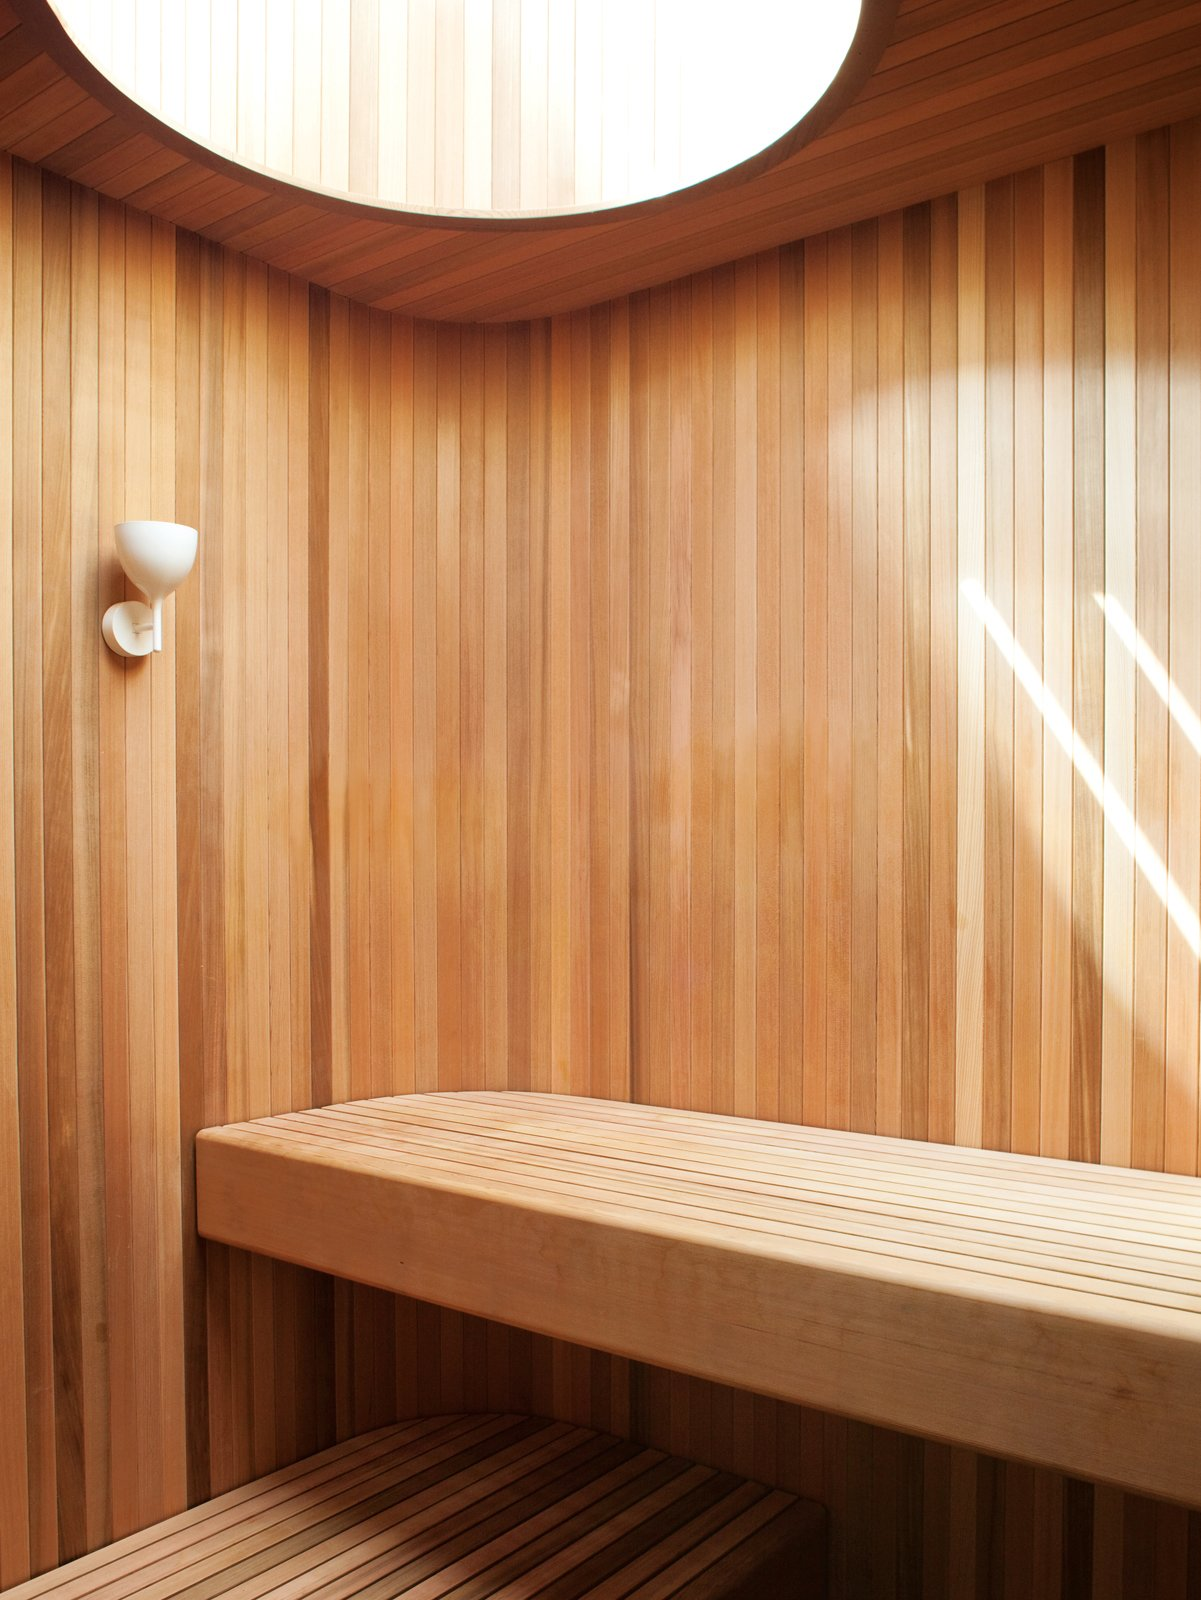 Bath Room The sauna is a decidedly Scandinavian touch.  Photo 8 of 10 in 10 Sterling Saunas in Modern Homes from Designed In-House